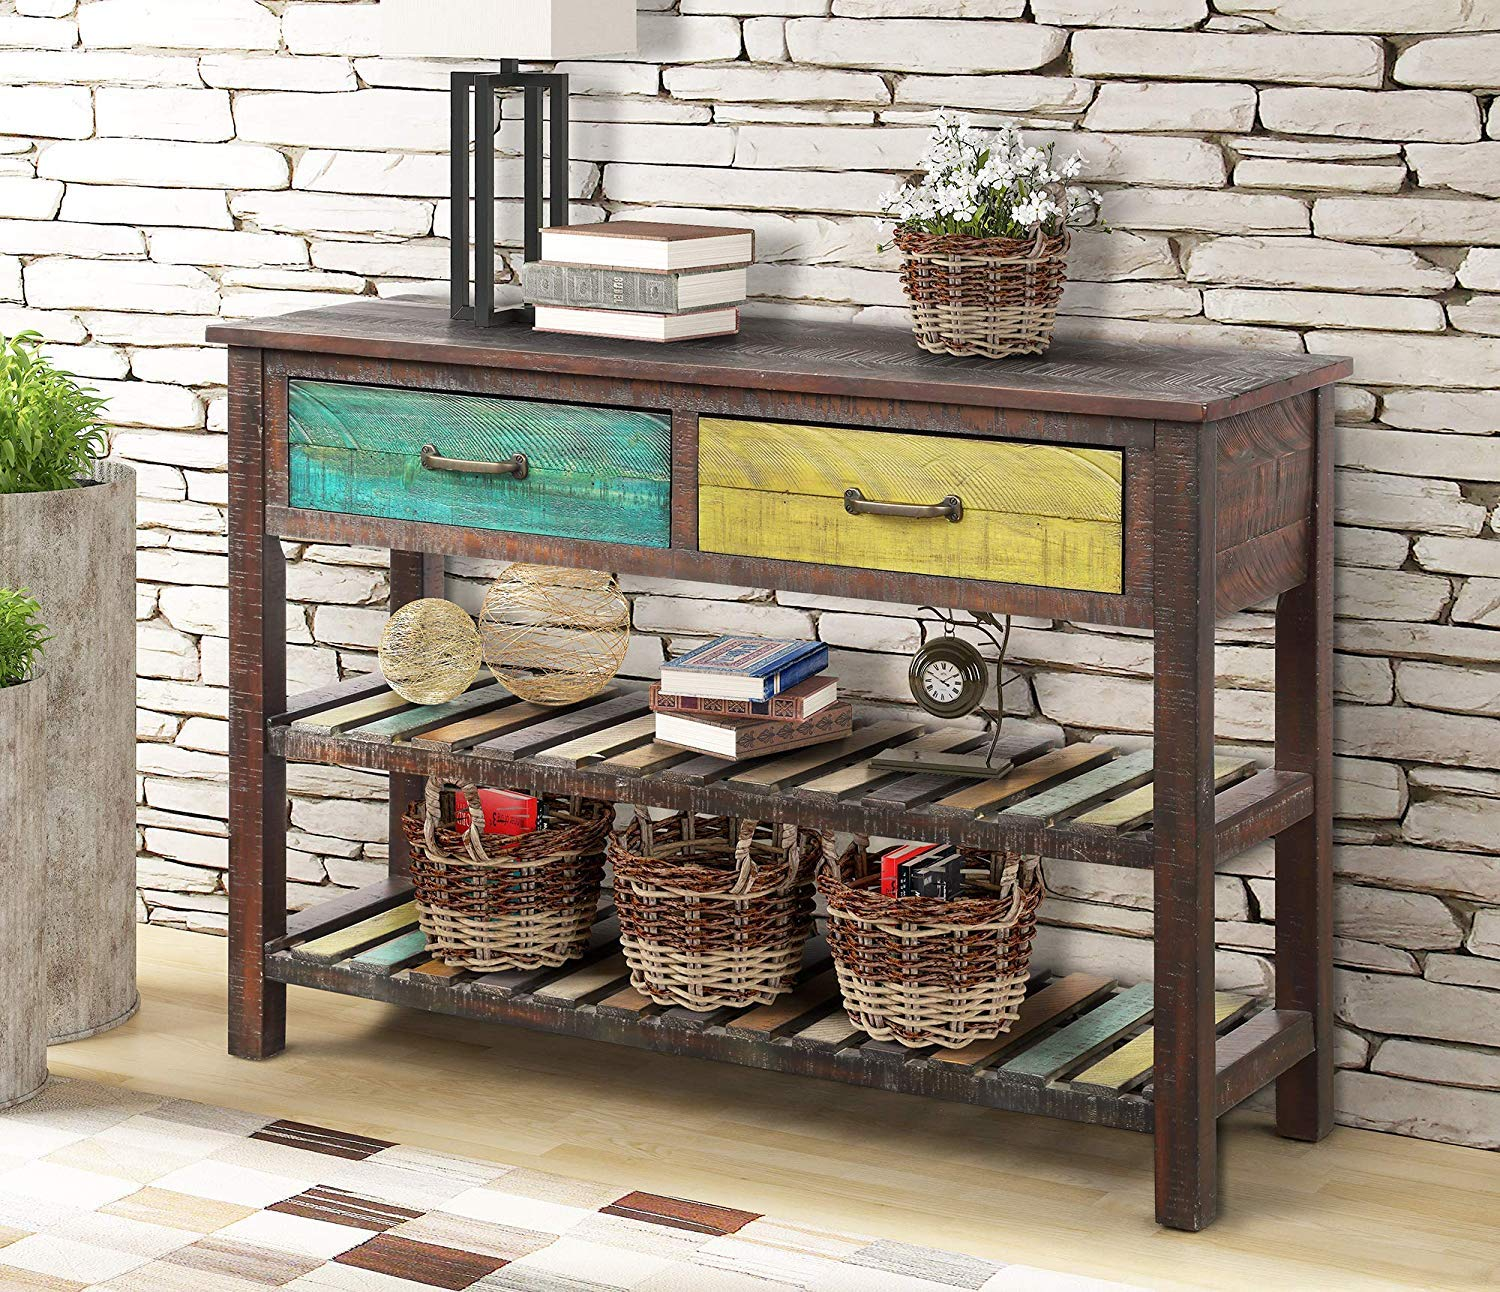 ALI VIRGO Retro Console Buffet Sideboard Sofa Table for Entryway Drawers Bottom Shelves Living Room Furniture Two Gap Tiers Shelf, Antique Grey